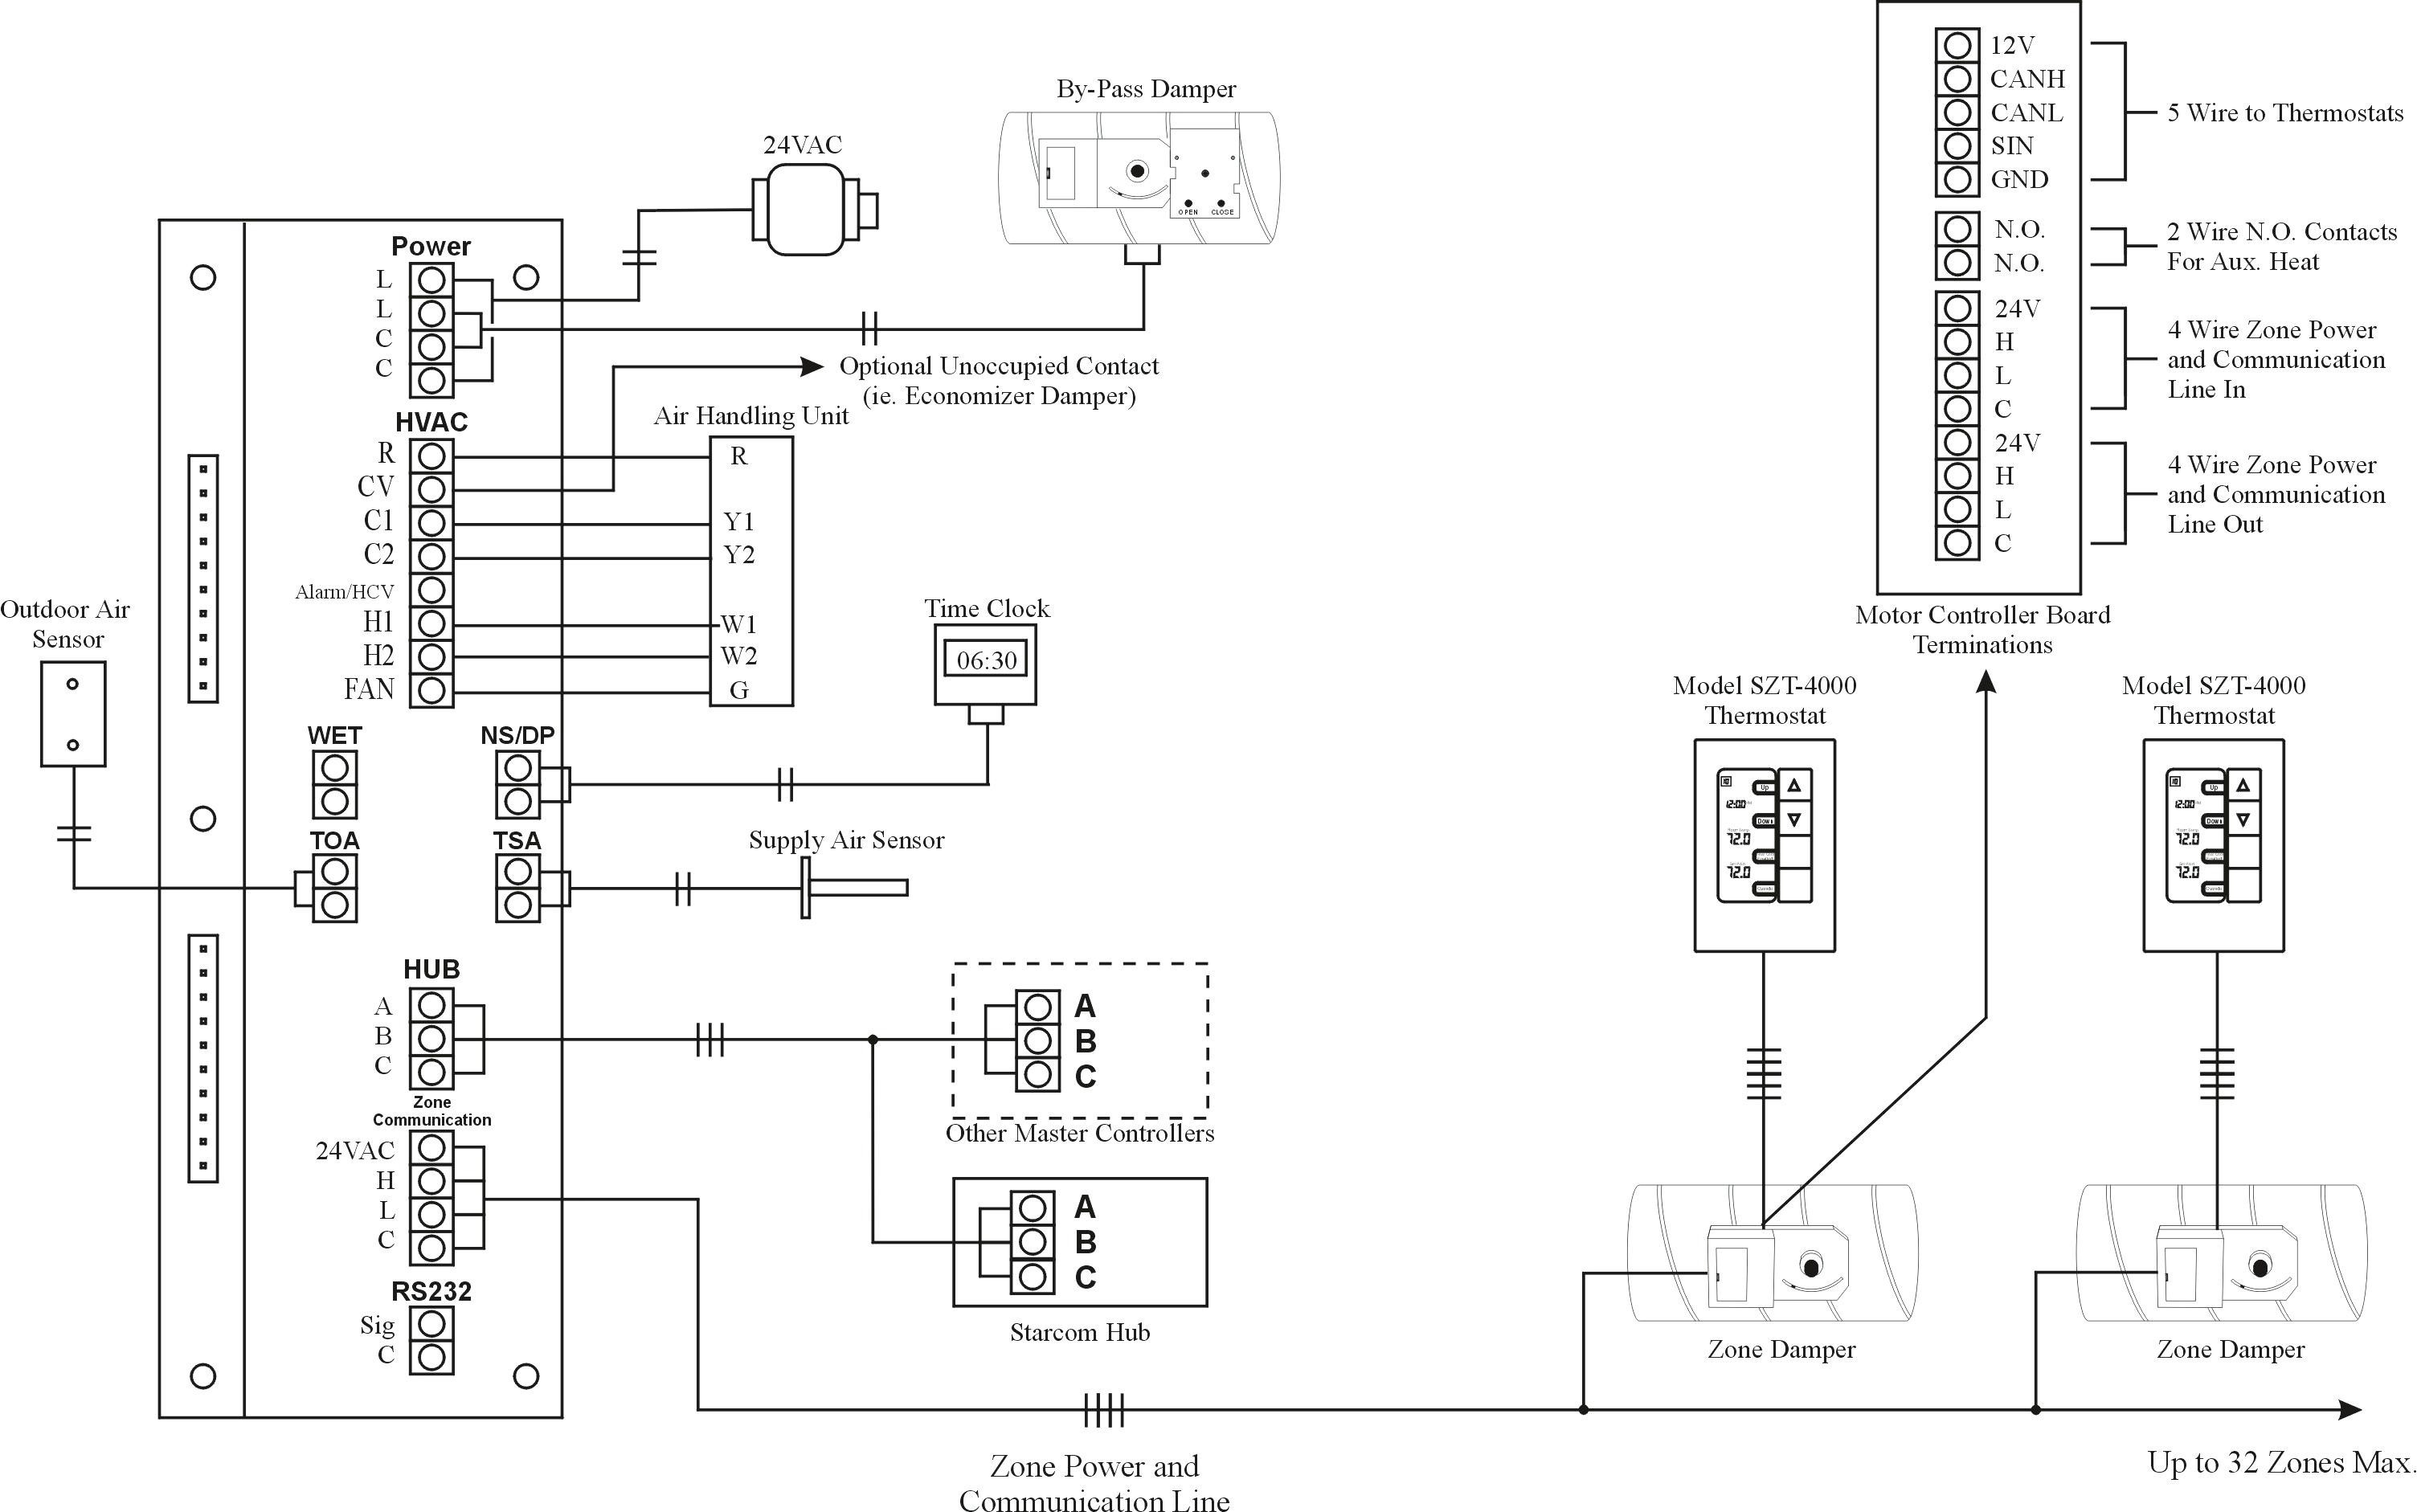 Goodman Furnace Thermostat Wiring Diagram Collection For Furnaces Heating And Cooling Luxury Wire Adorable Download